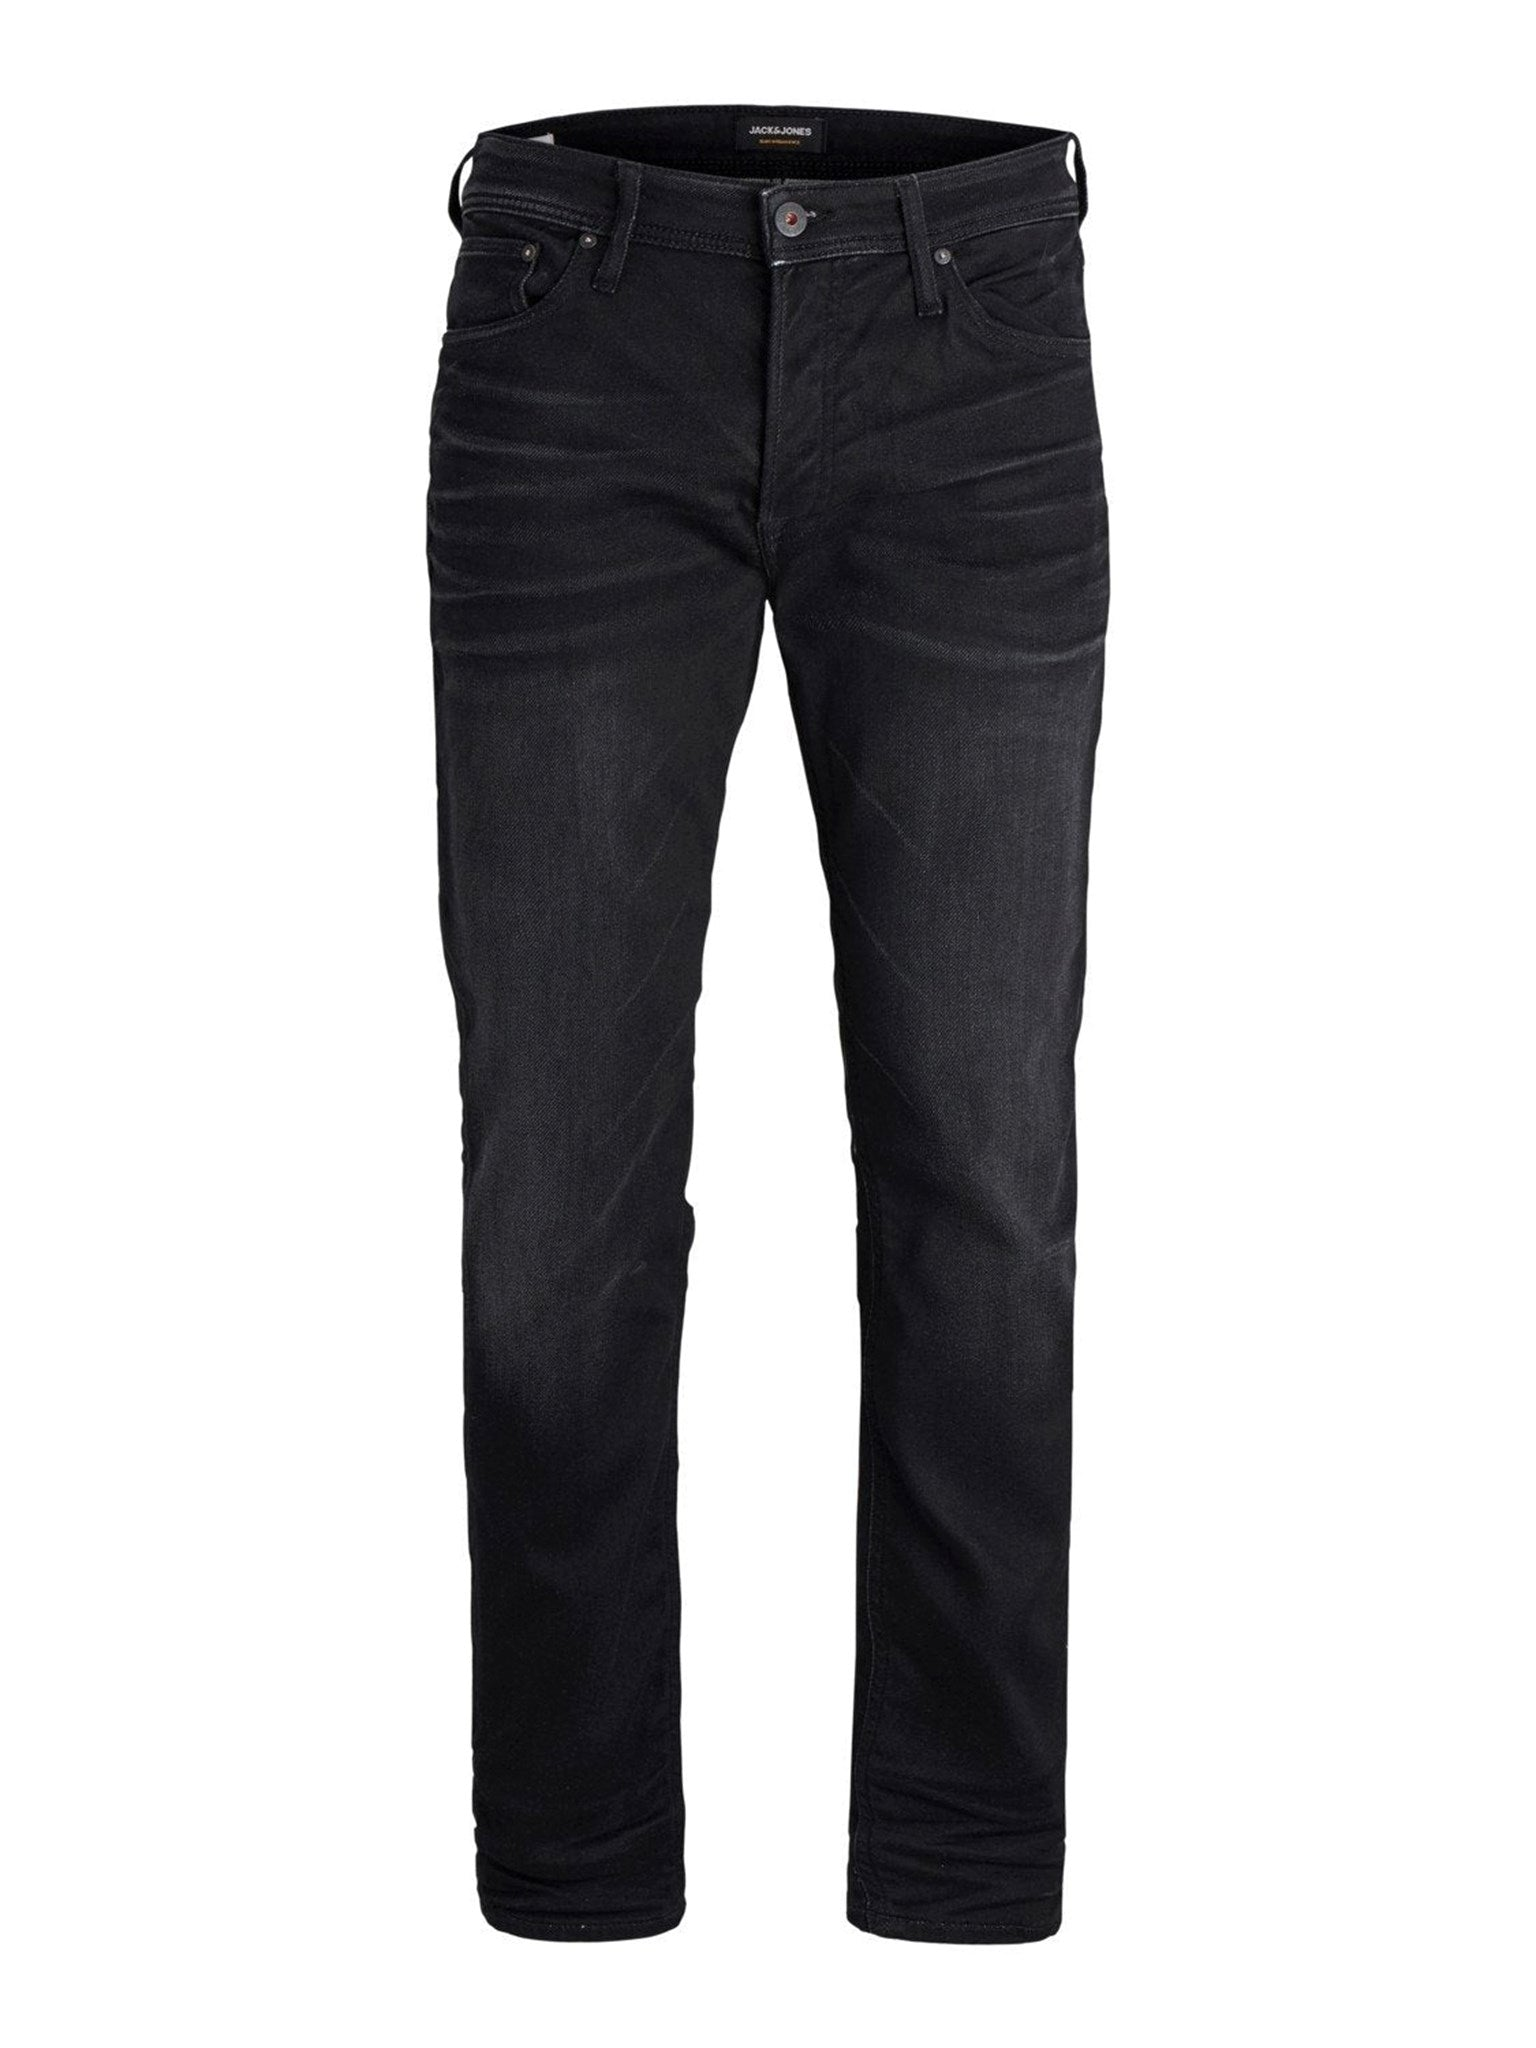 Mike Stretch Jeans - Sort